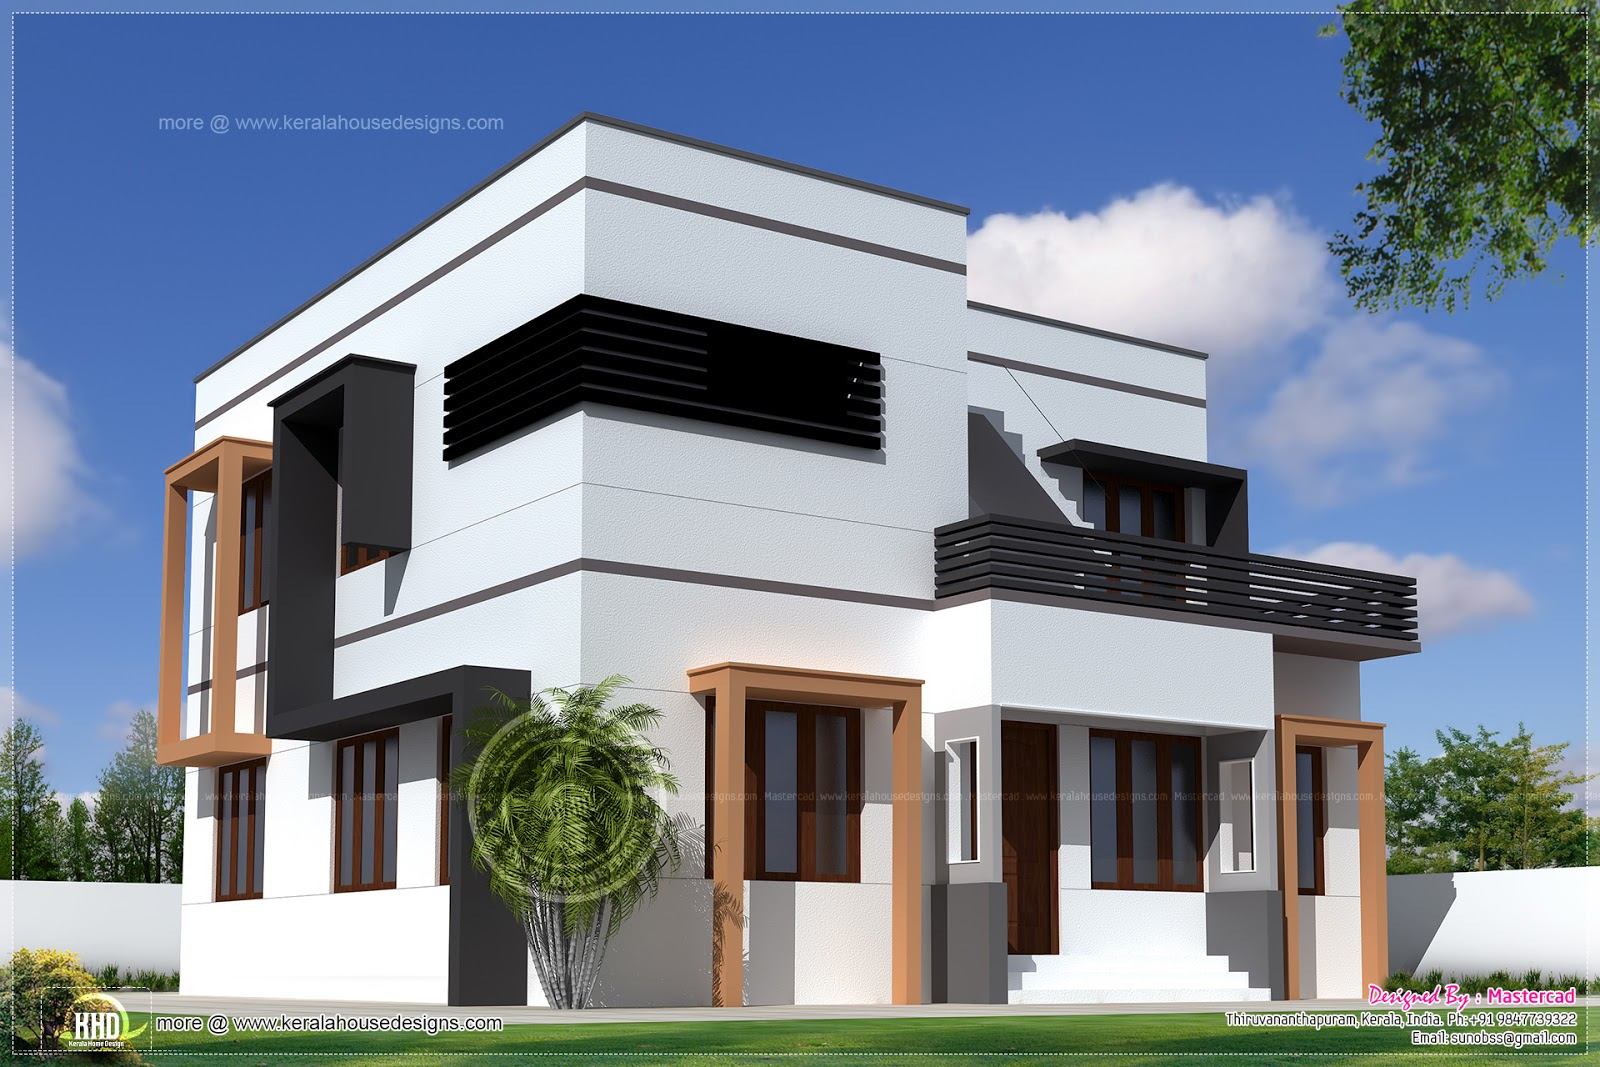 25 best square house designs house plans 53530 for Exterior modern design